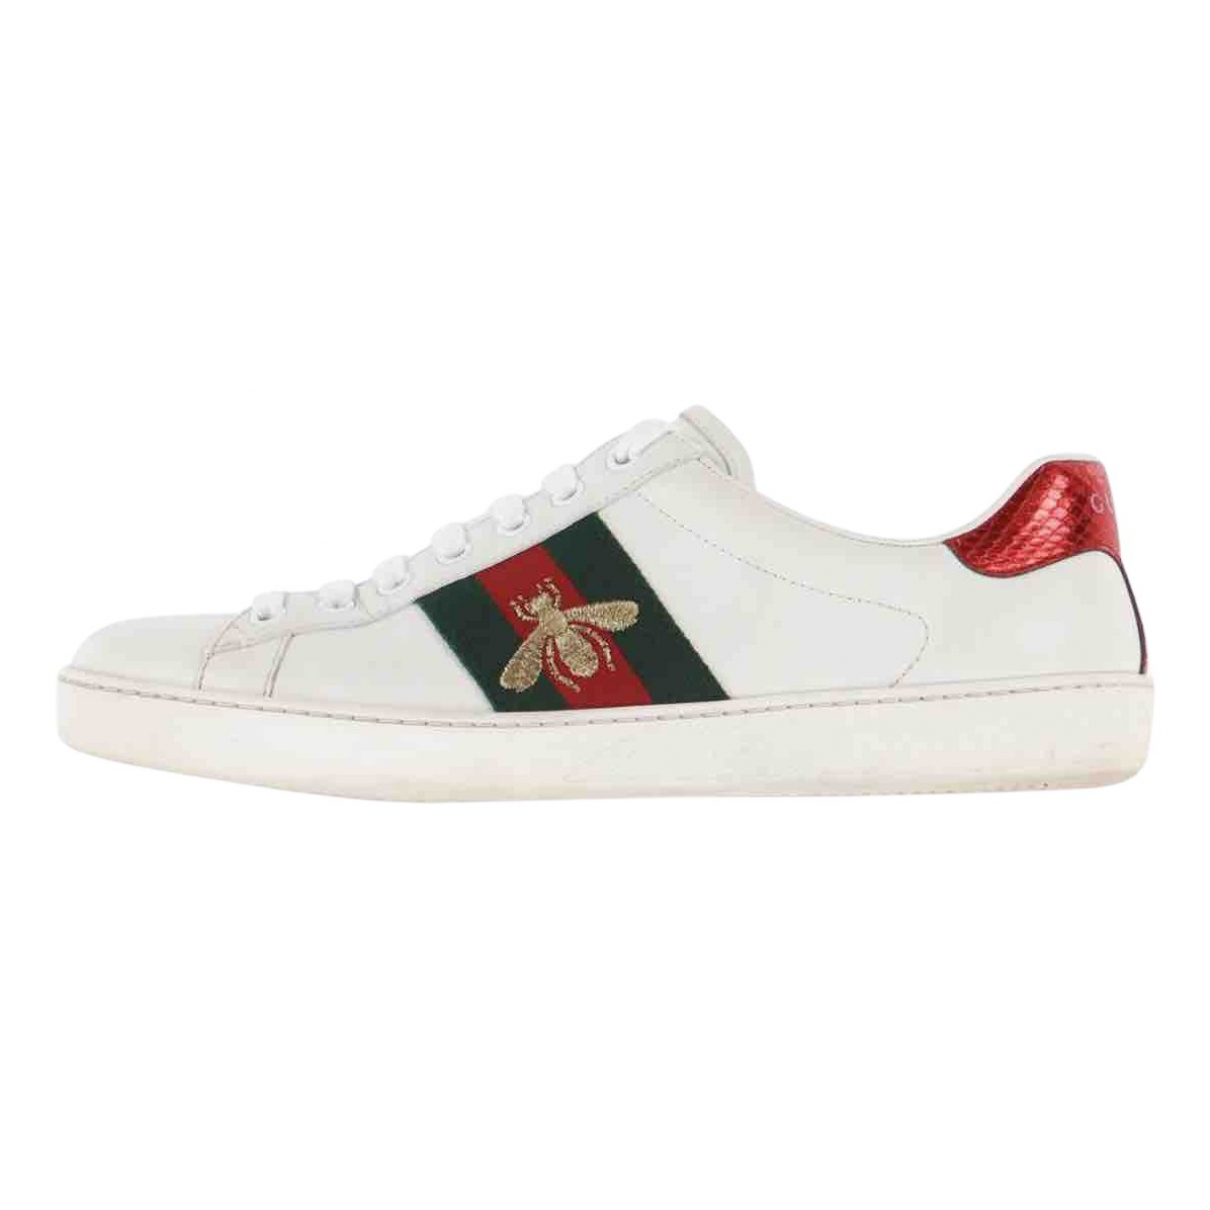 Gucci \N White Leather Lace ups for Women 7.5 UK